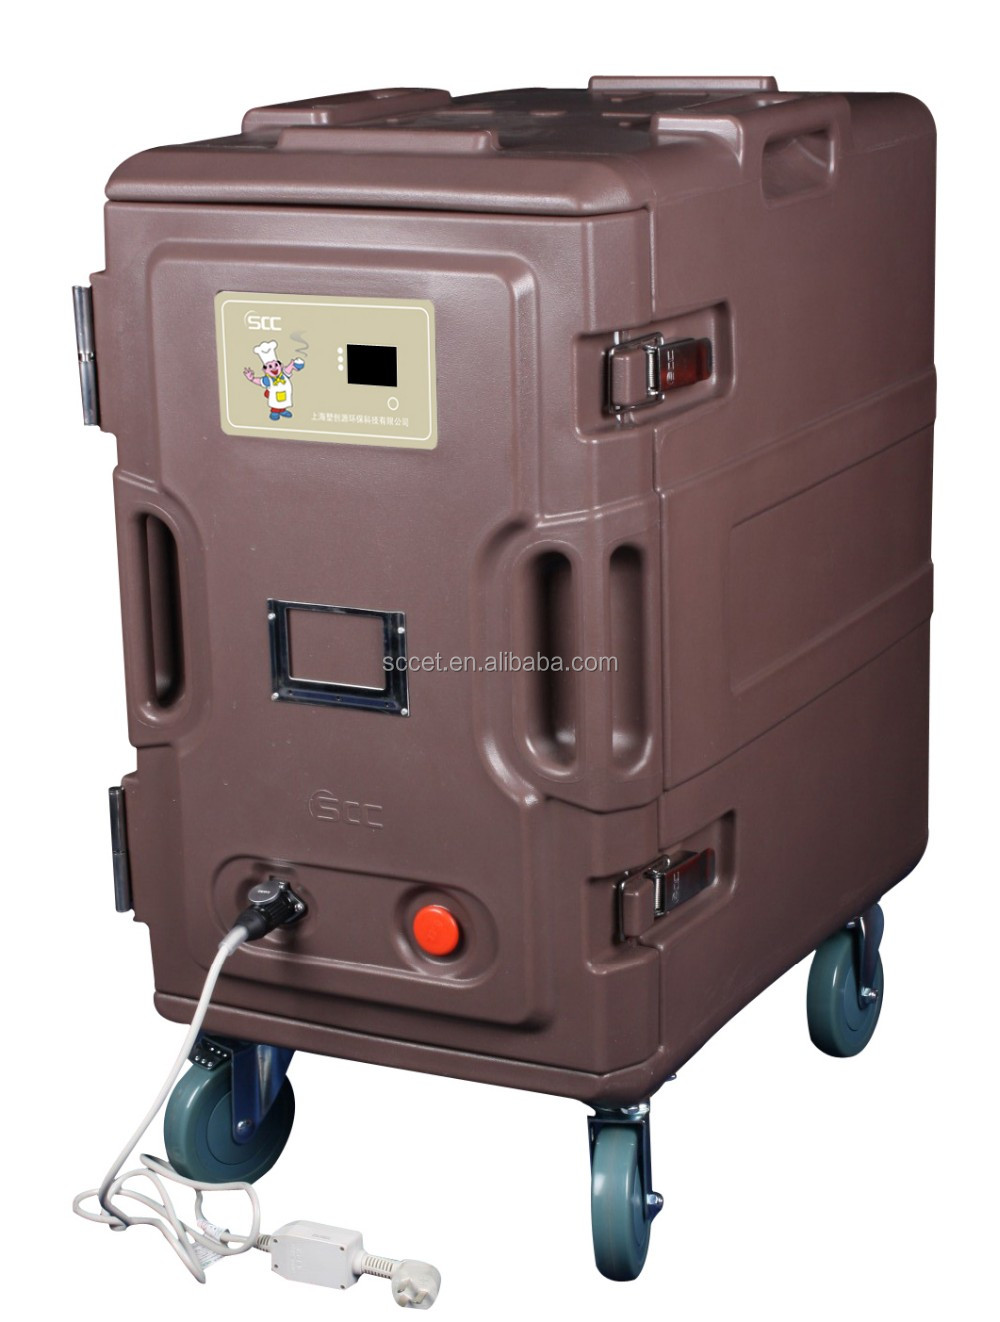 Food service insulated Loaders Heat Resistant cabinet